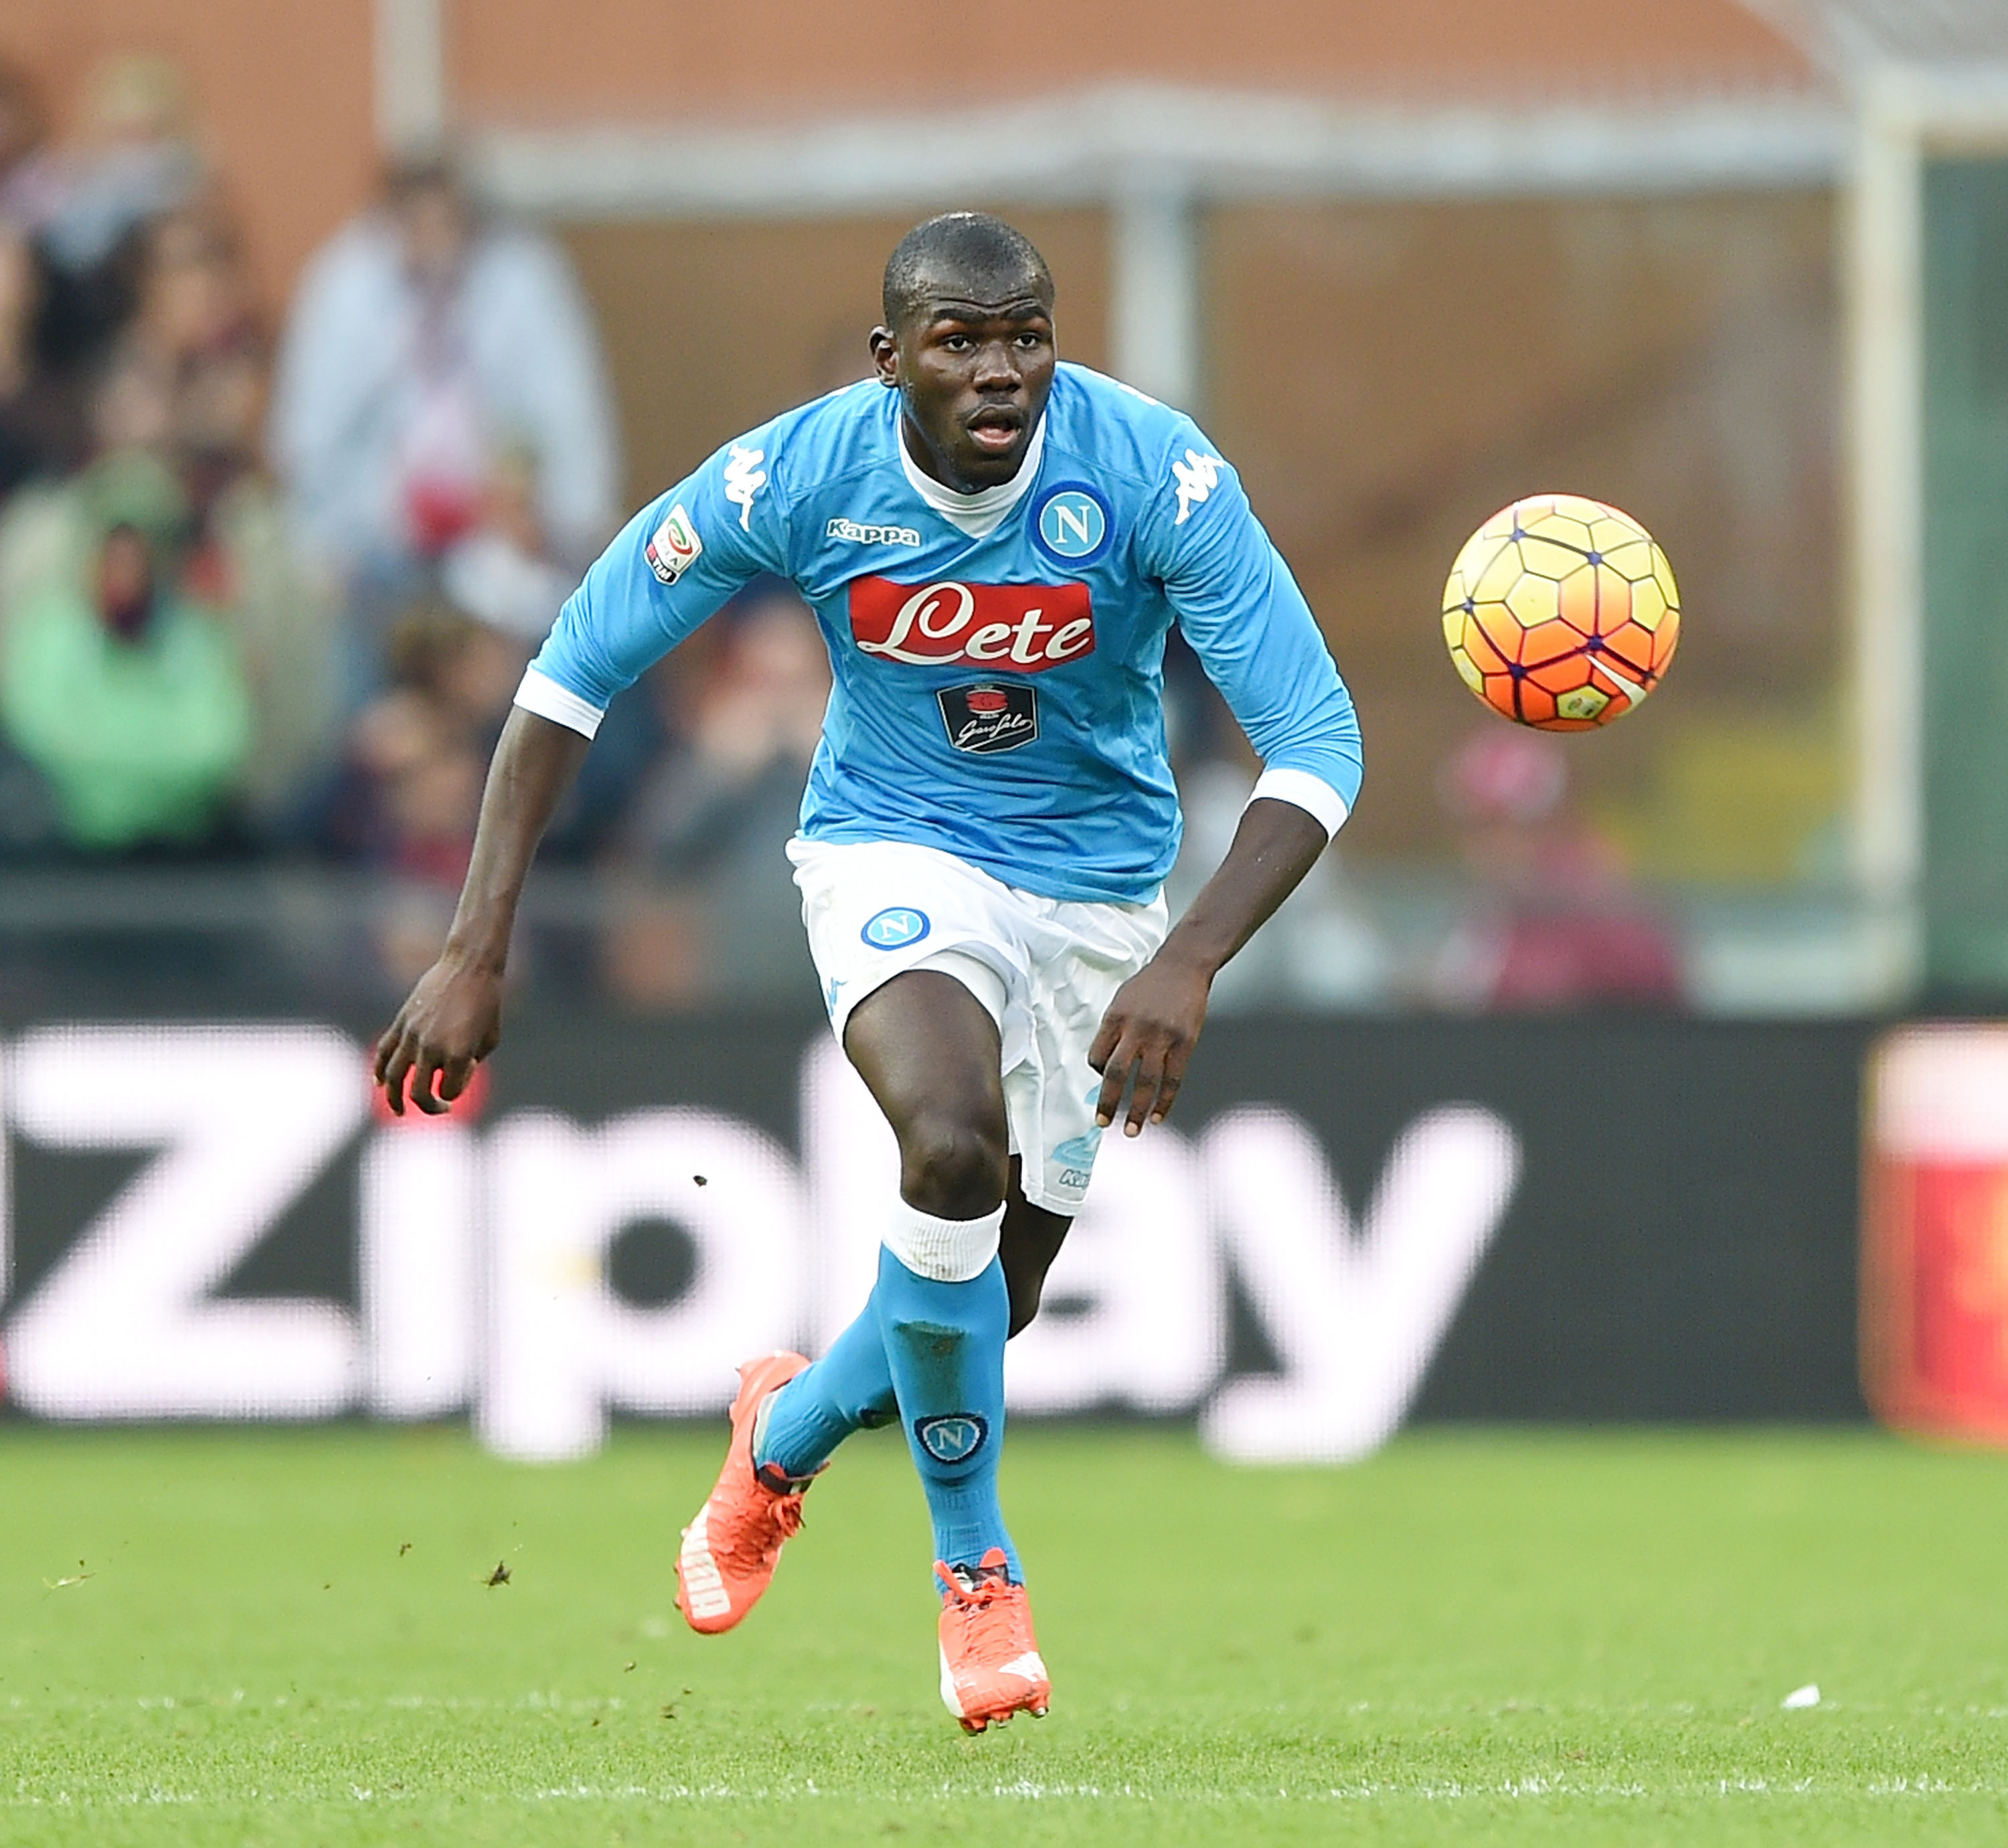 Newcastle United submit £18.8m for Napoli defender Koulibaly